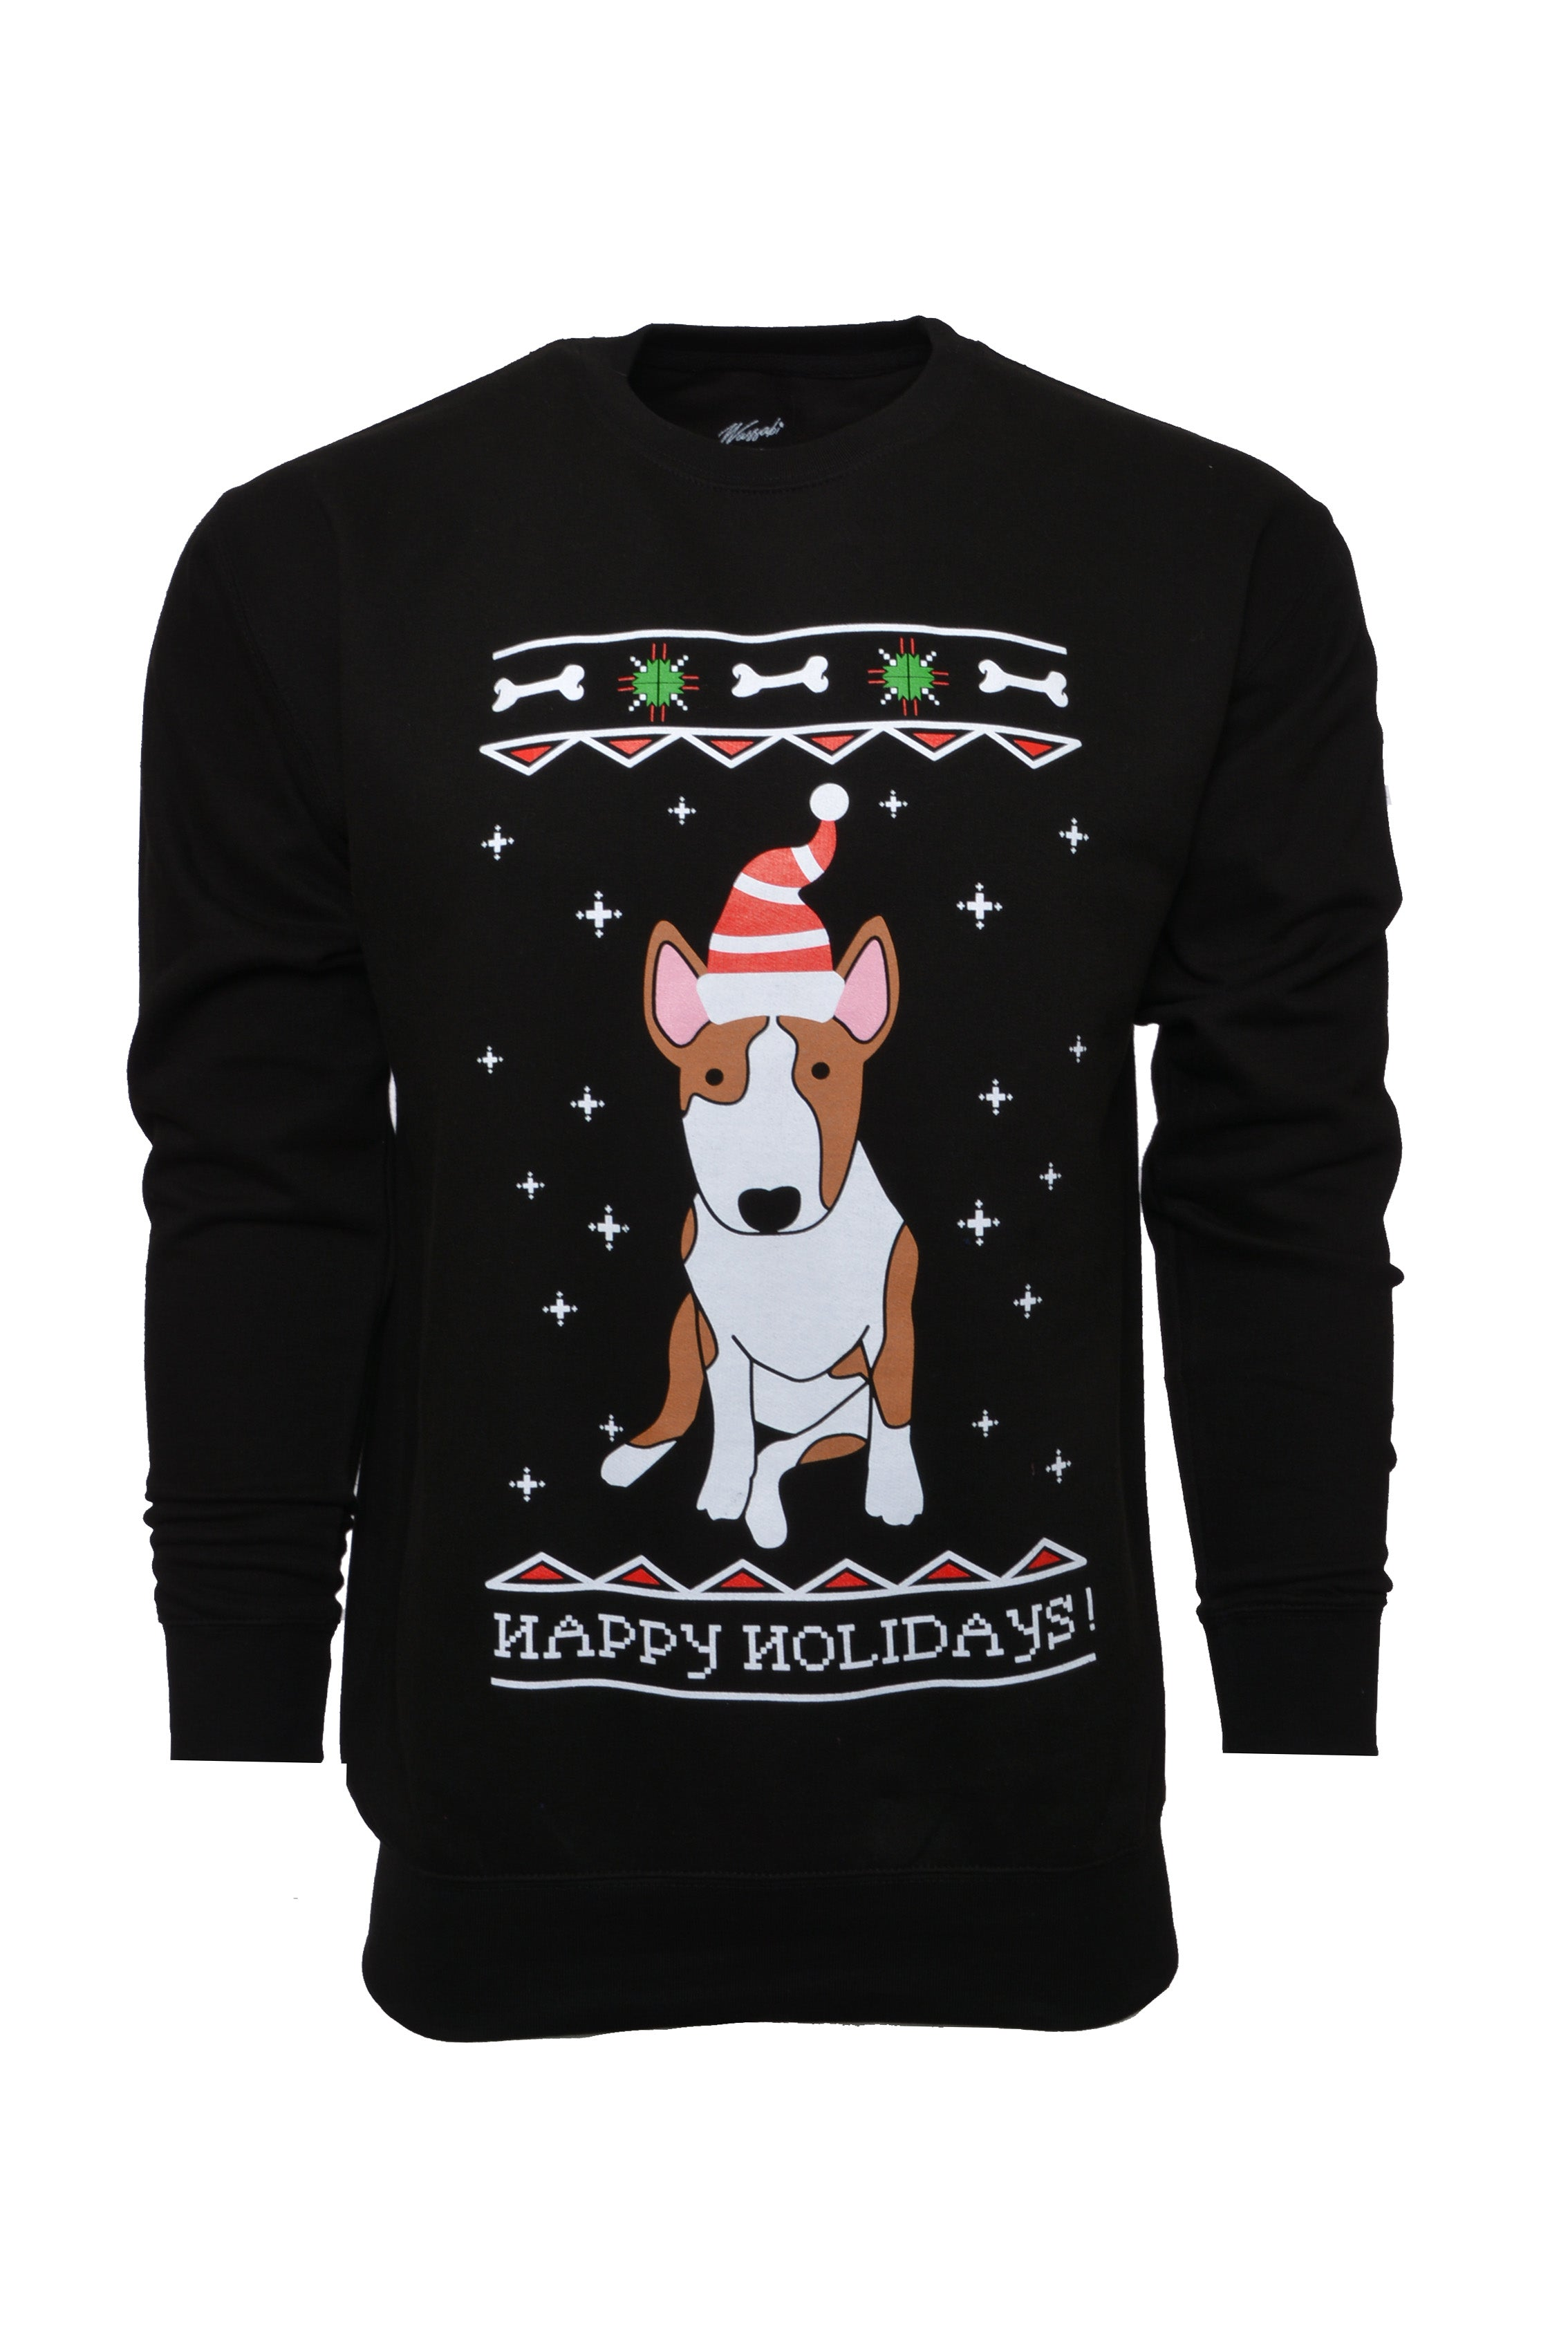 Wassabi Moosie Puppy Christmas Sweater - Black